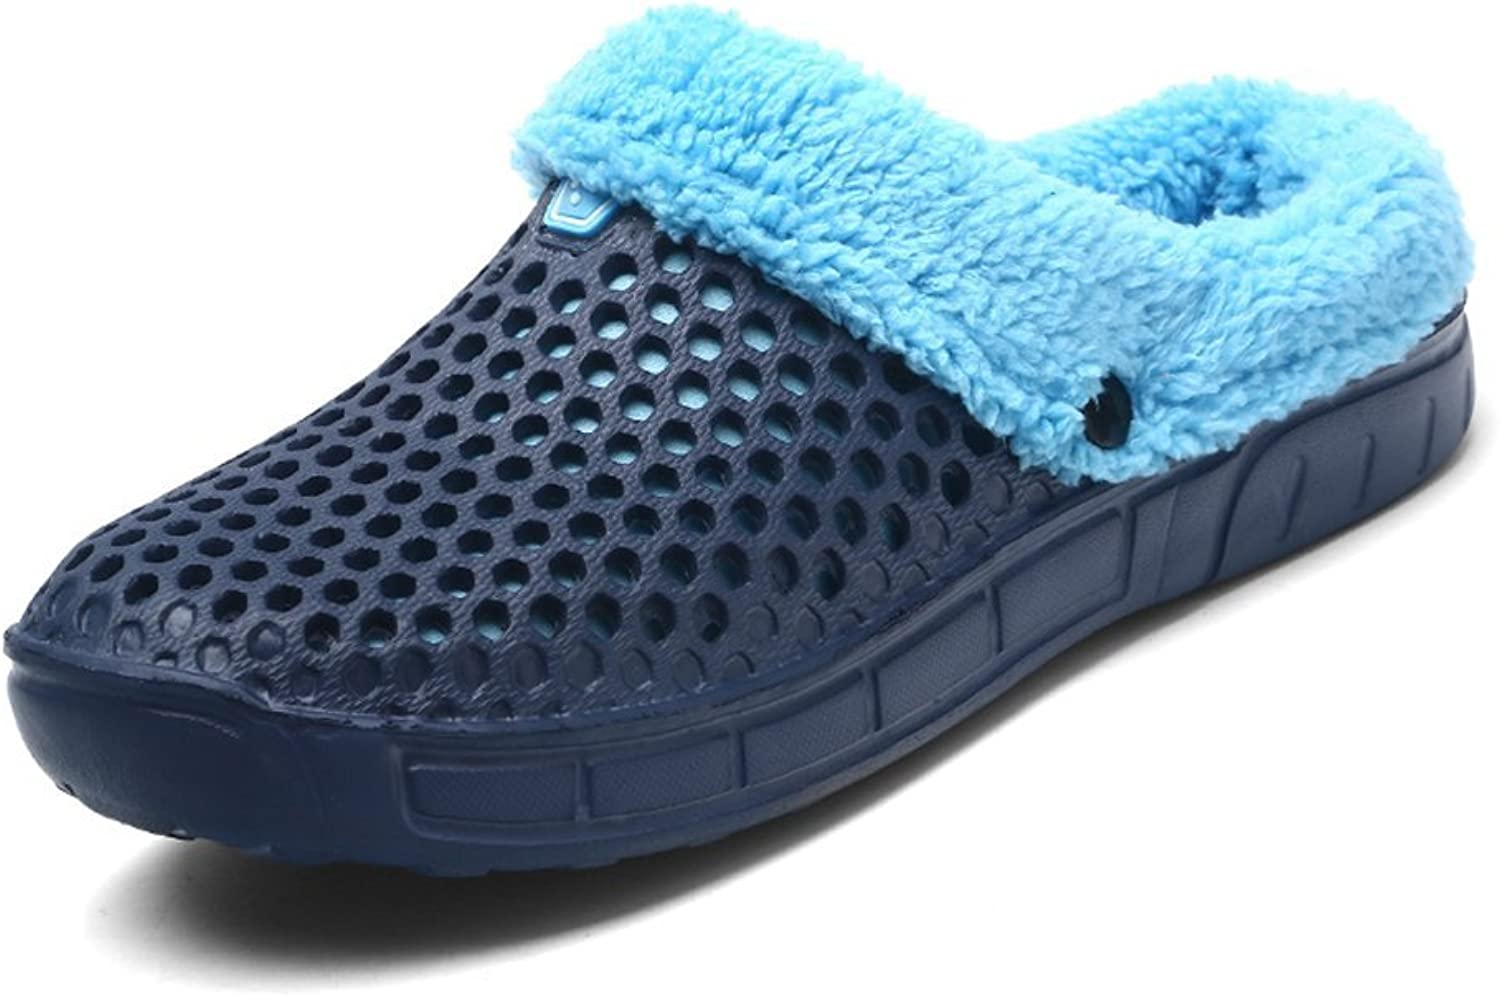 Z.SUO Men's Women's Breathable Mesh Lined Beach Outdoor Walking Garden Clogs Slippers